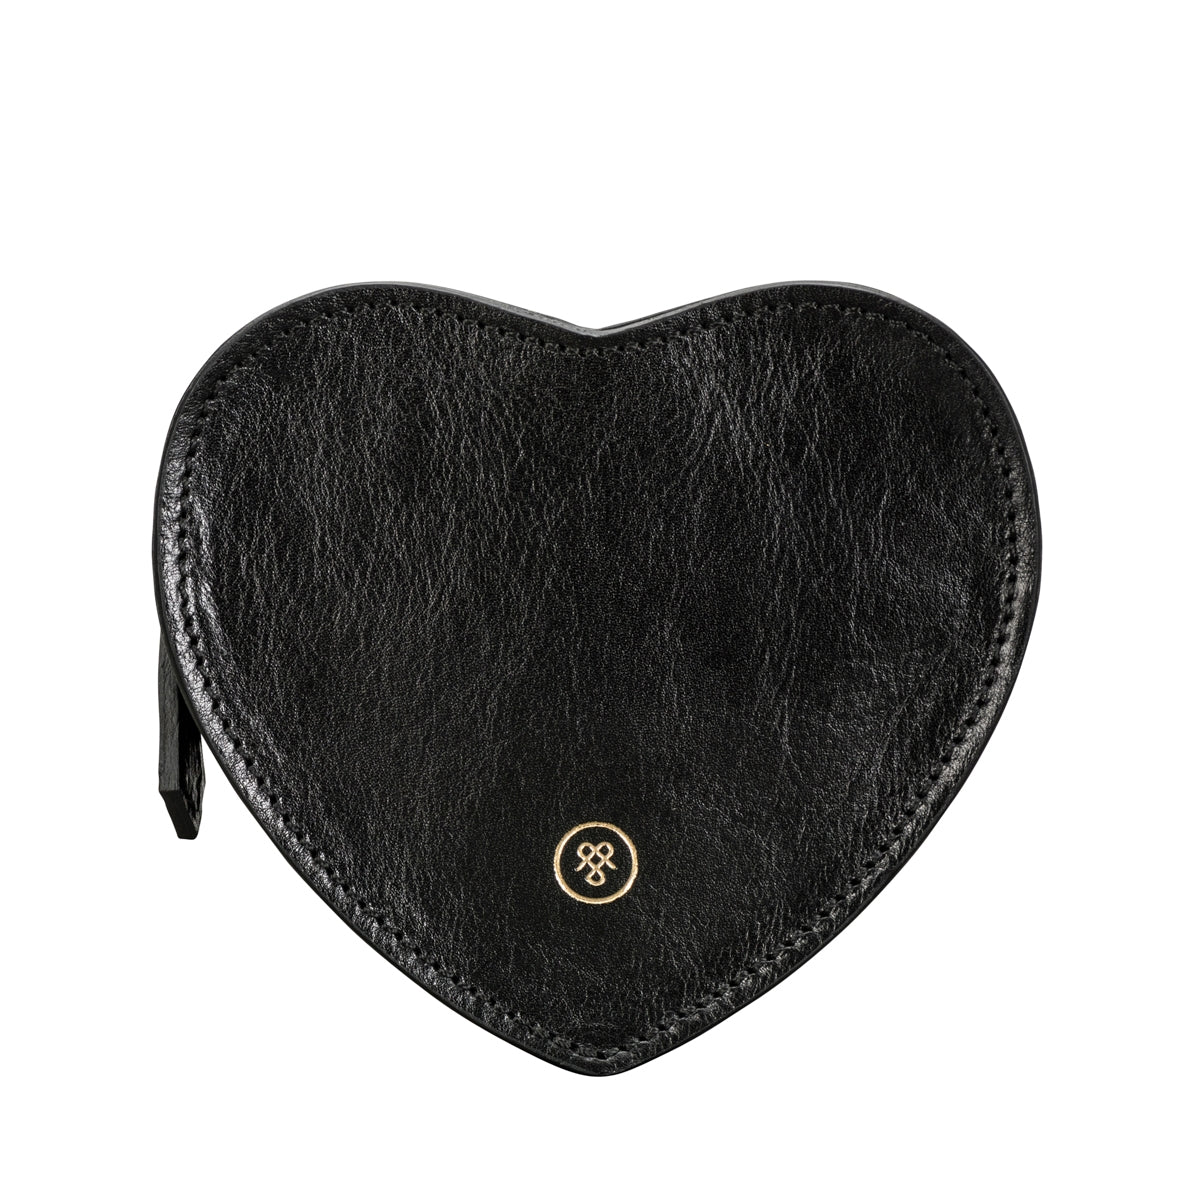 Image 1 of the 'MirabellaL' Black Leather Heart-shaped Handbag Organiser